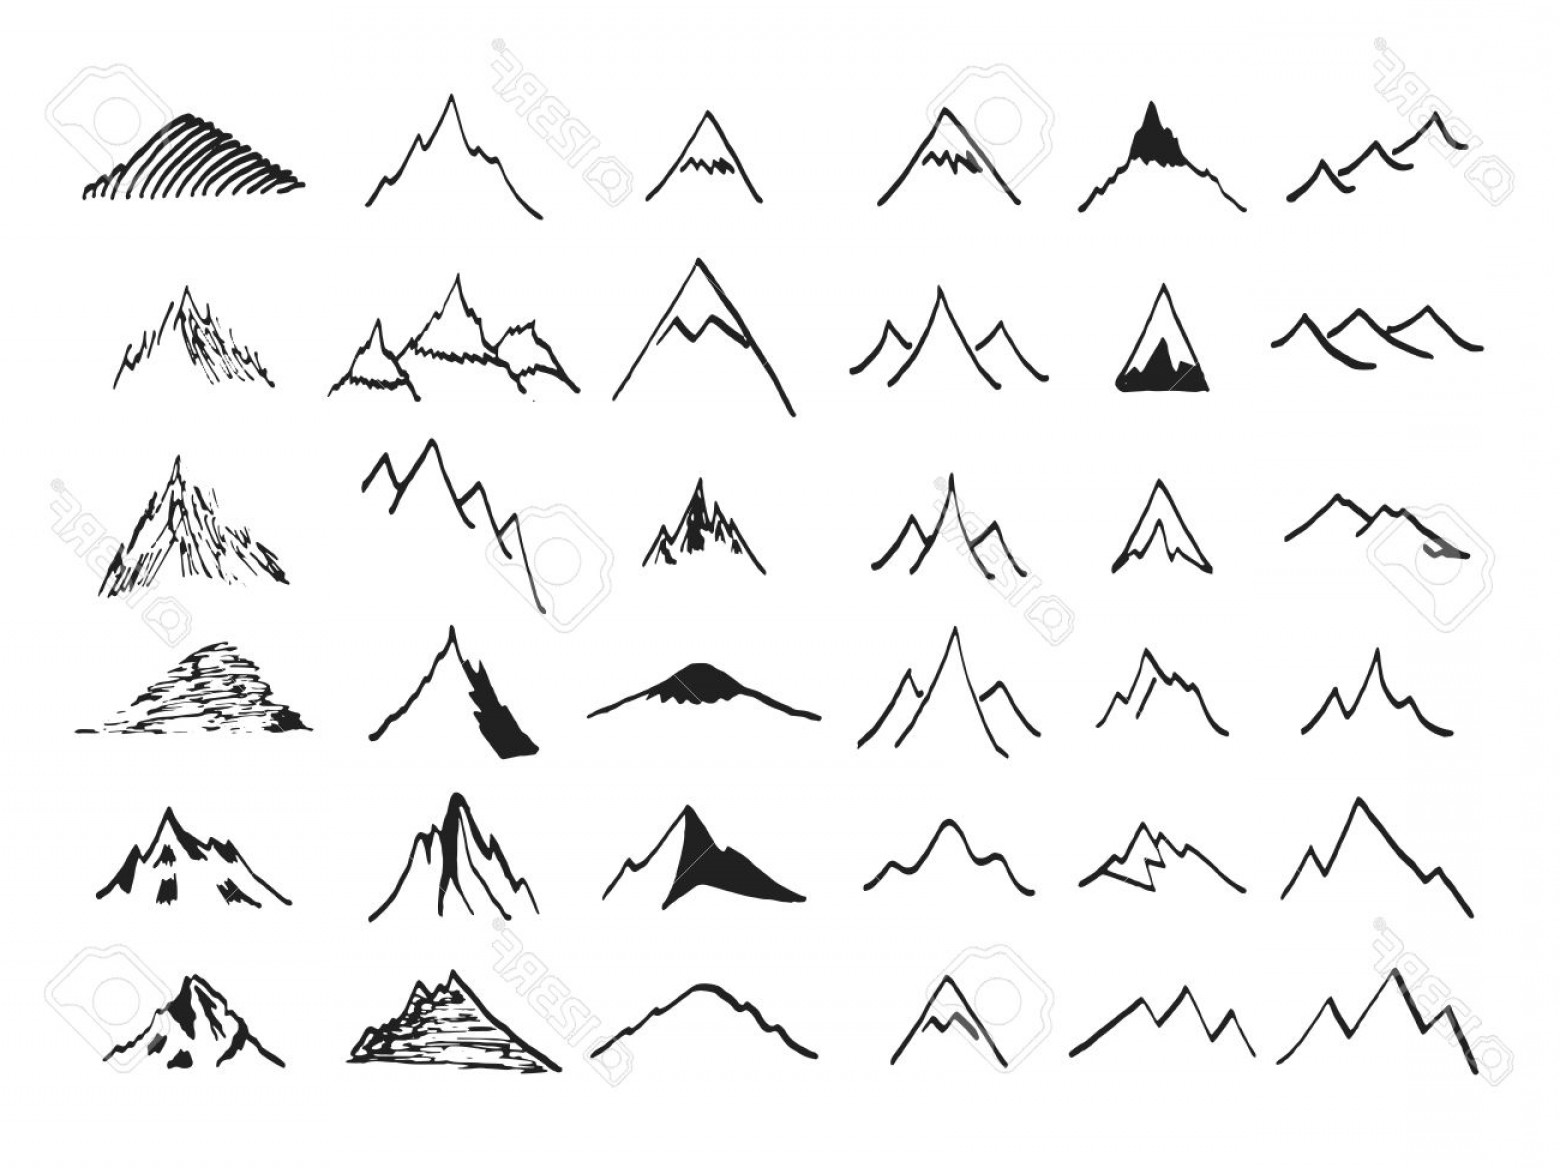 Rocky Mountain Line Art Vector: Photostock Vector Mountain Icons Set Hand Drawn Line Icon Vintage Silhouette Collection Rock Ridges Volcano Snow Ice P